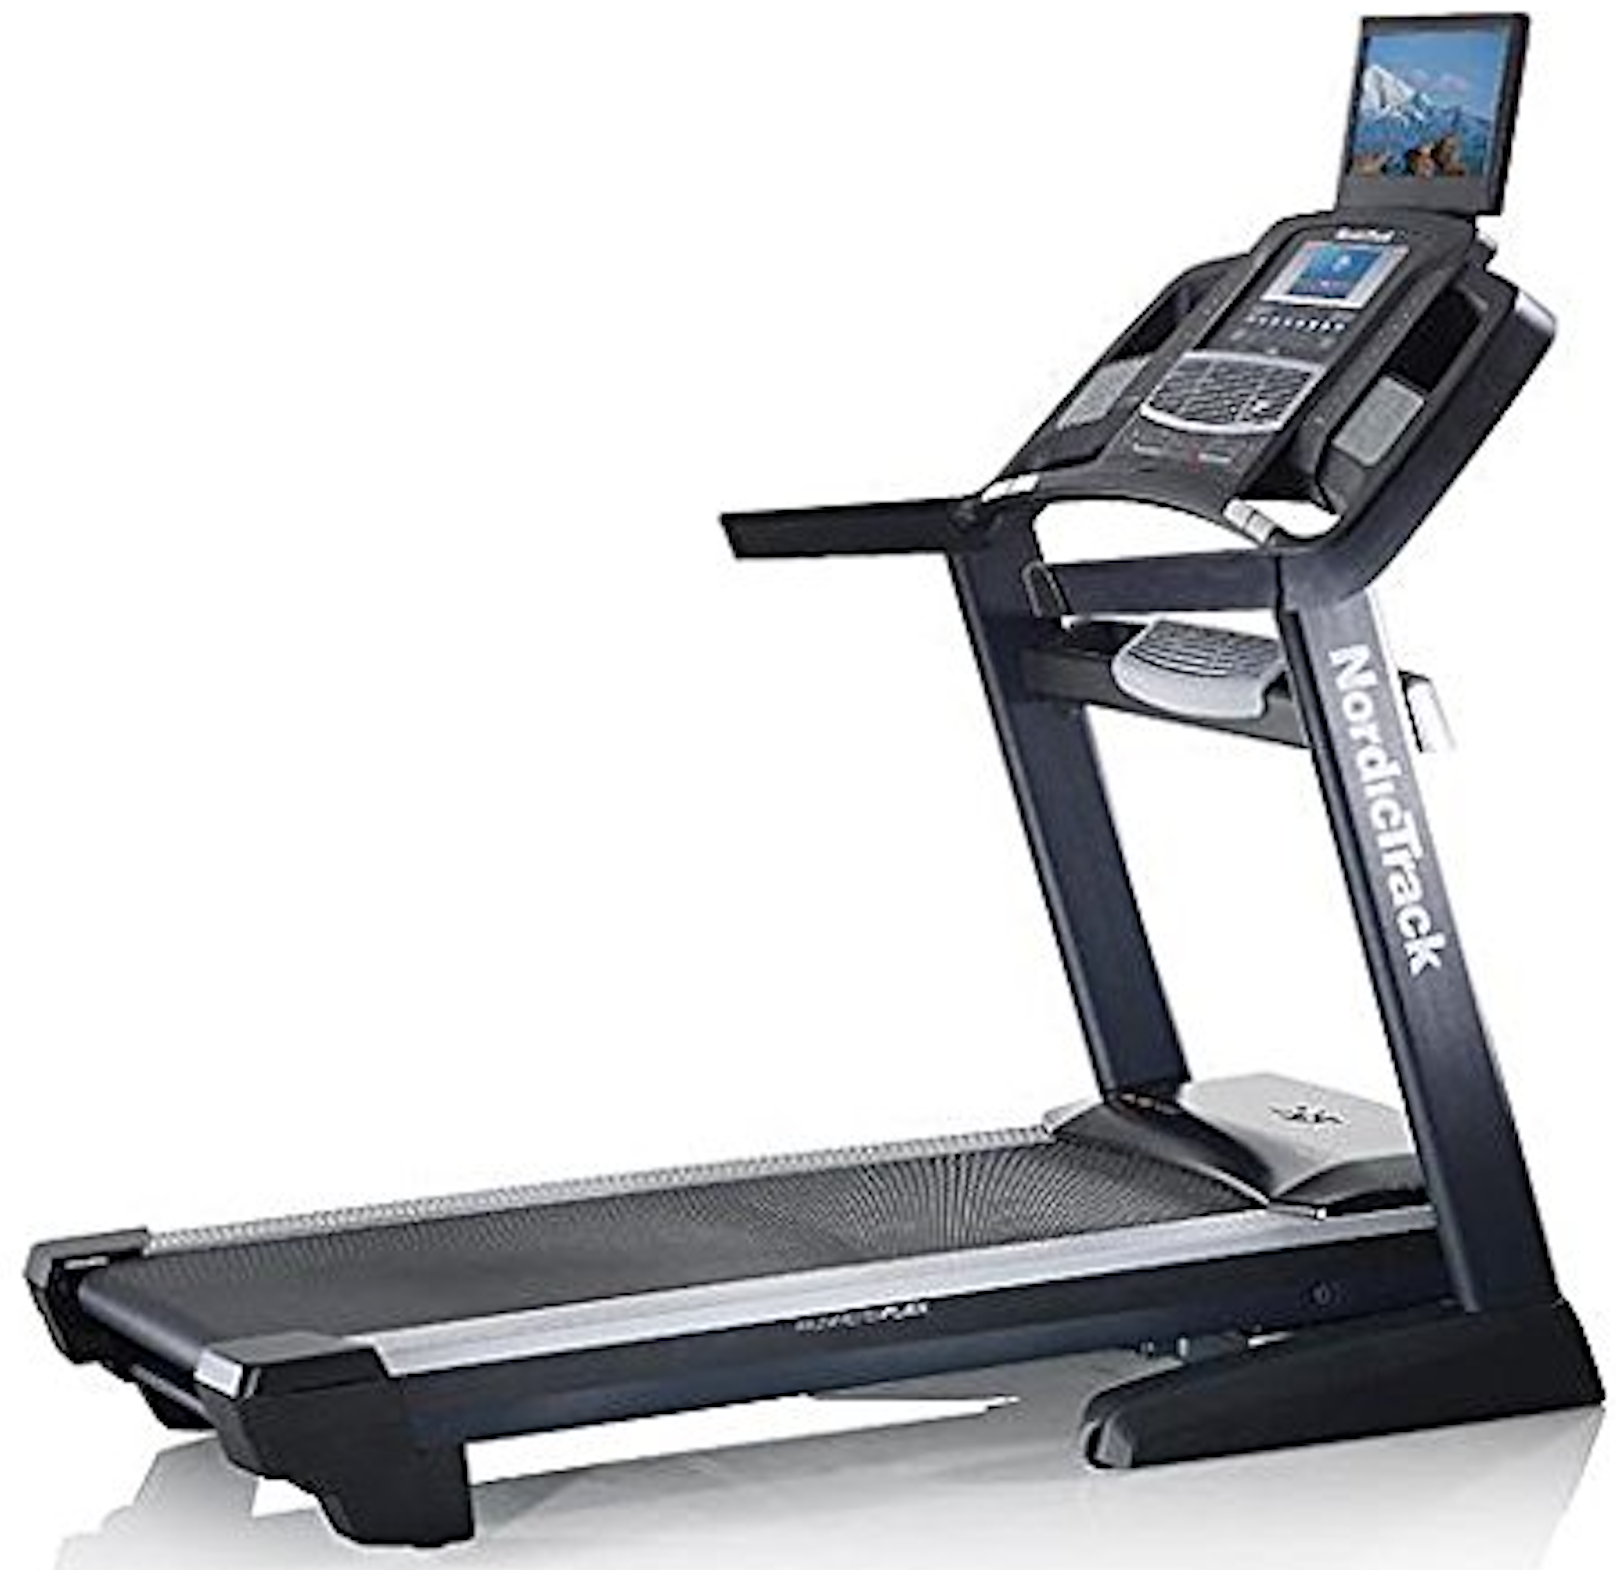 NordicTrack Elite 7700 Treadmill